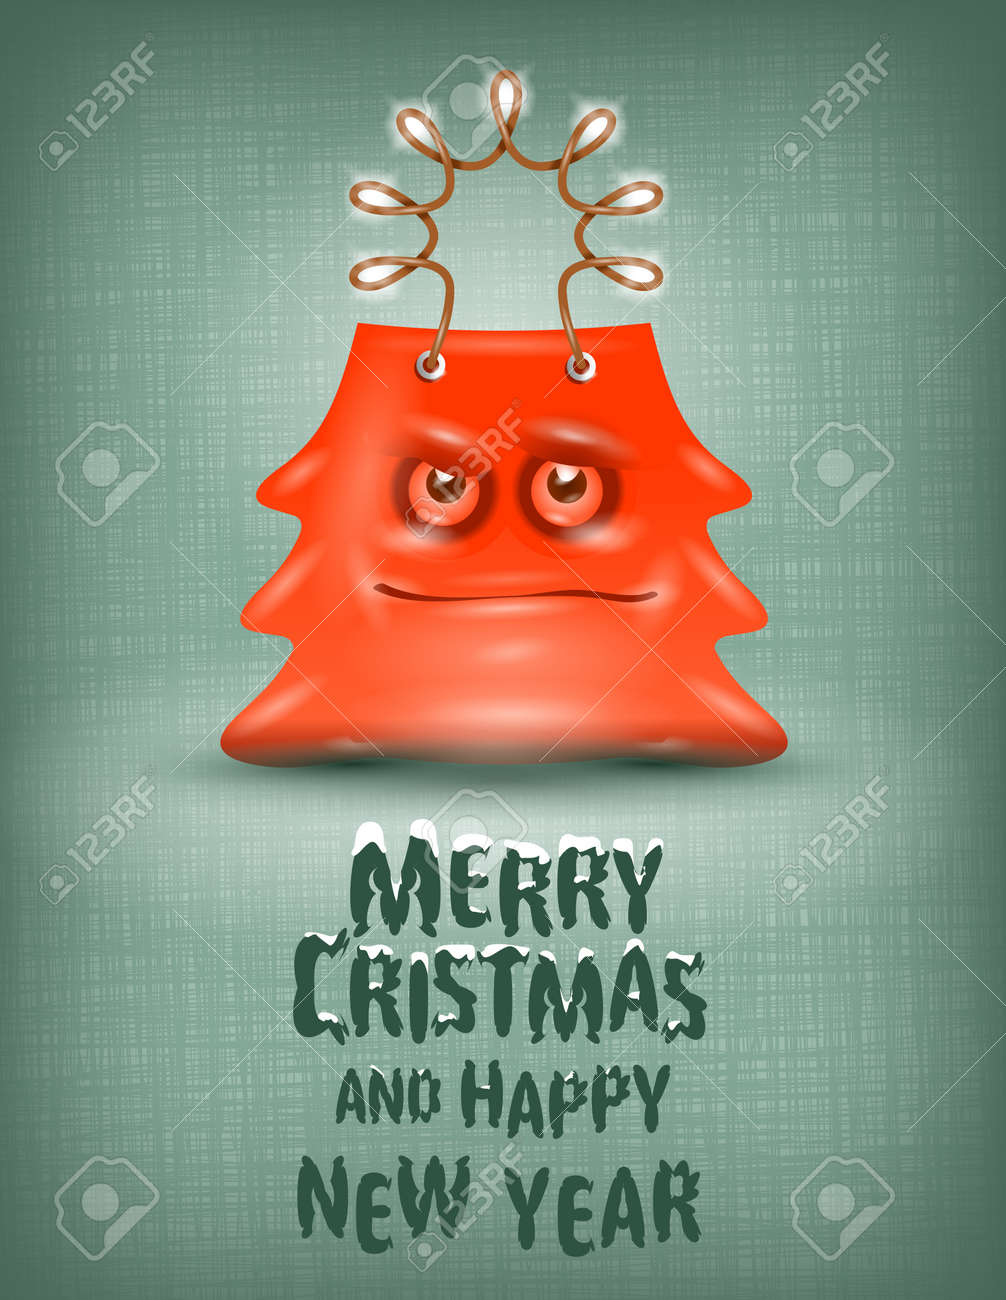 Shopping bag  Merry Christmas and happy New Year Stock Vector - 22509935